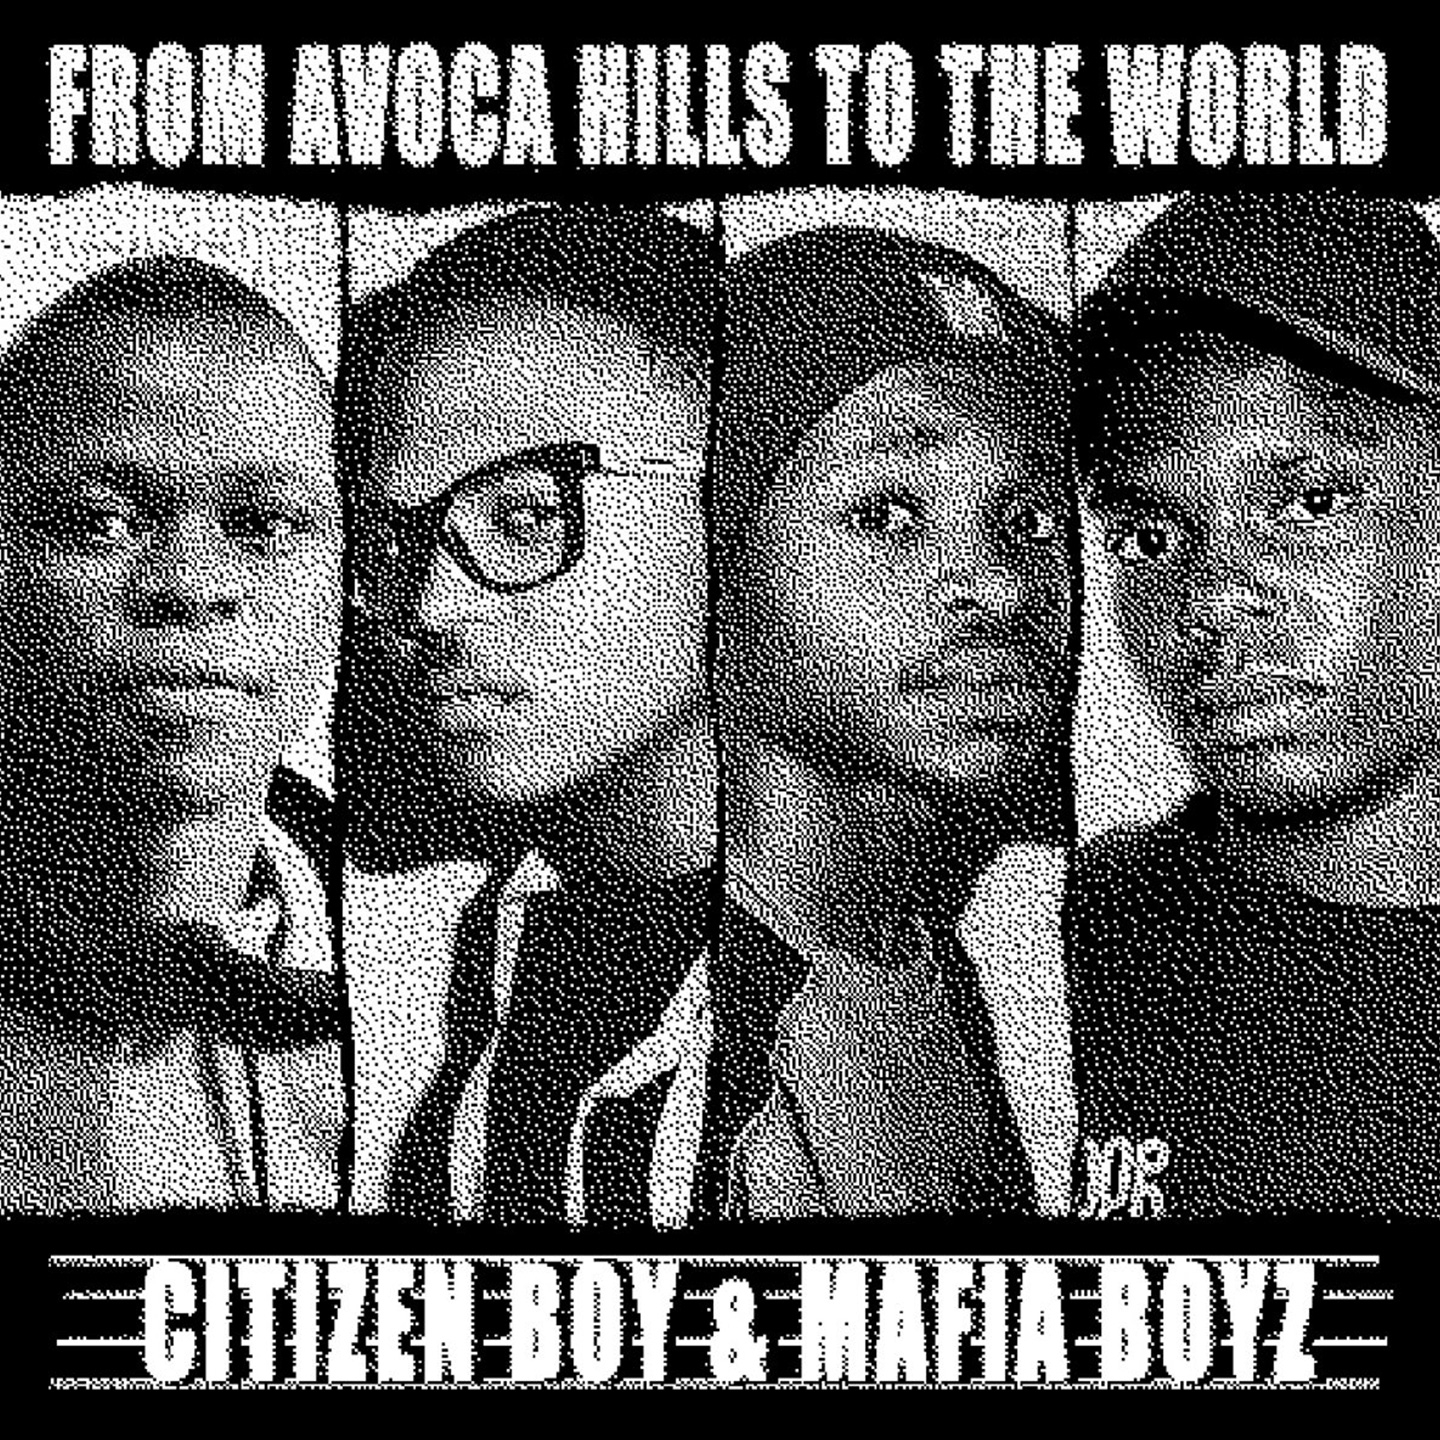 Citizen Boy & Mafia Boyz - From Avoca Hills To The World